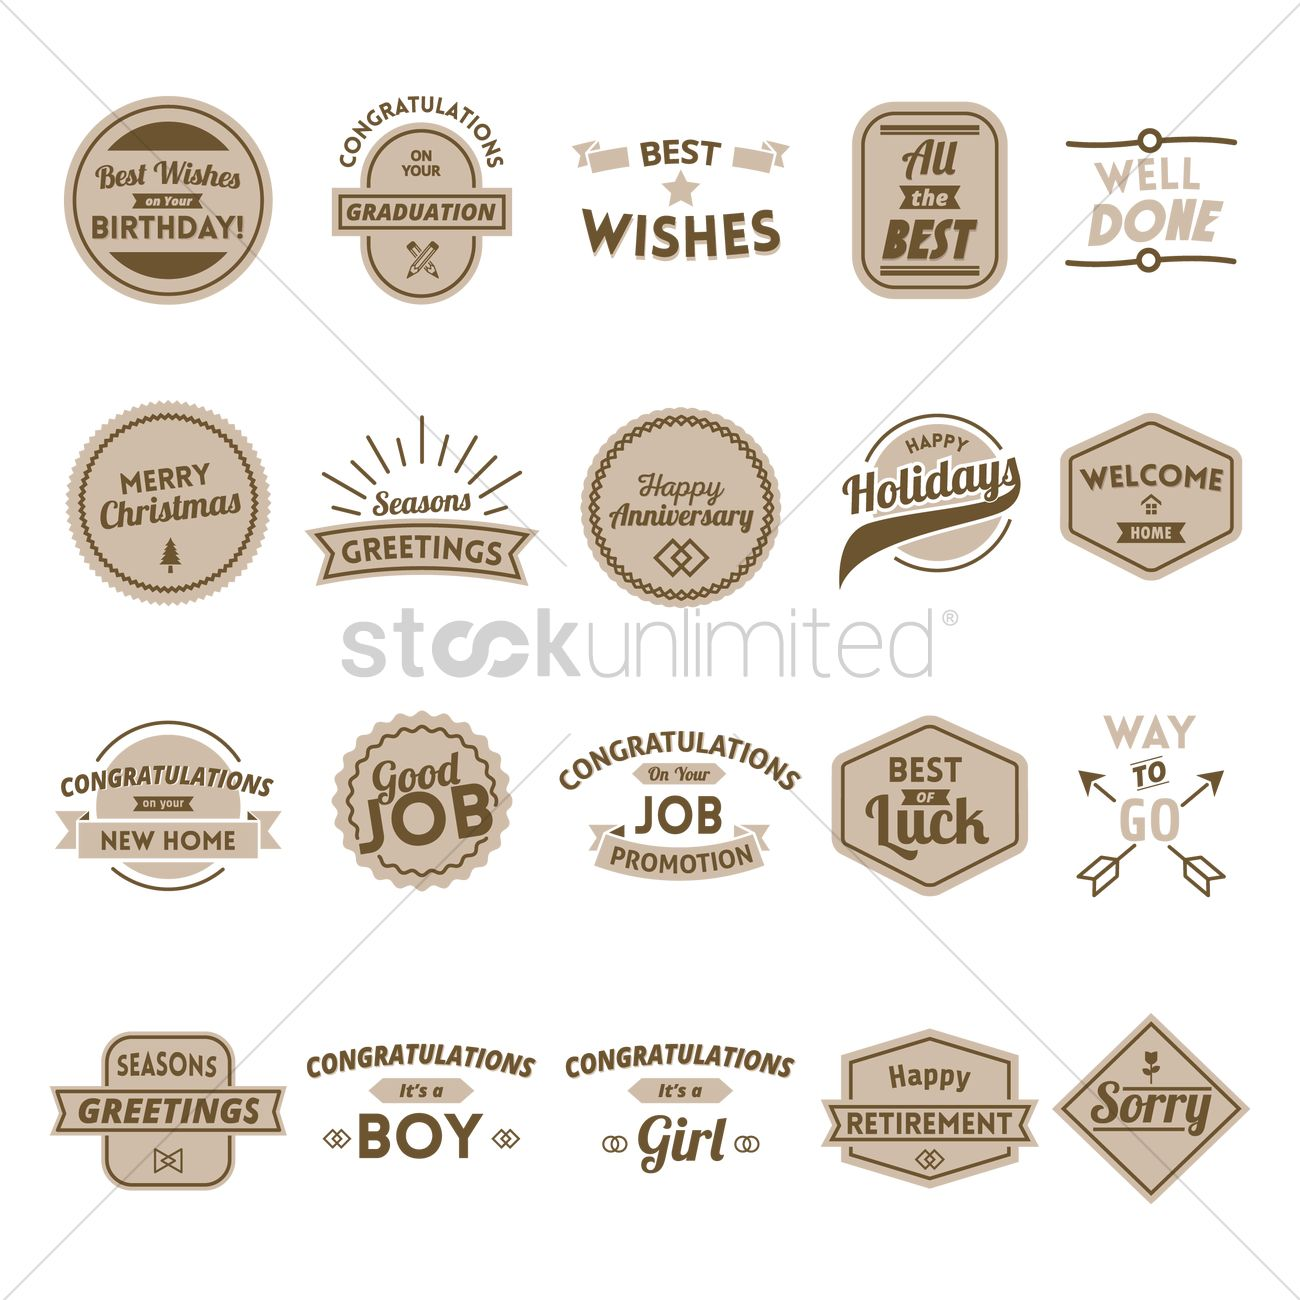 Collection of wish labels vector image 1827527 stockunlimited collection of wish labels vector graphic kristyandbryce Gallery